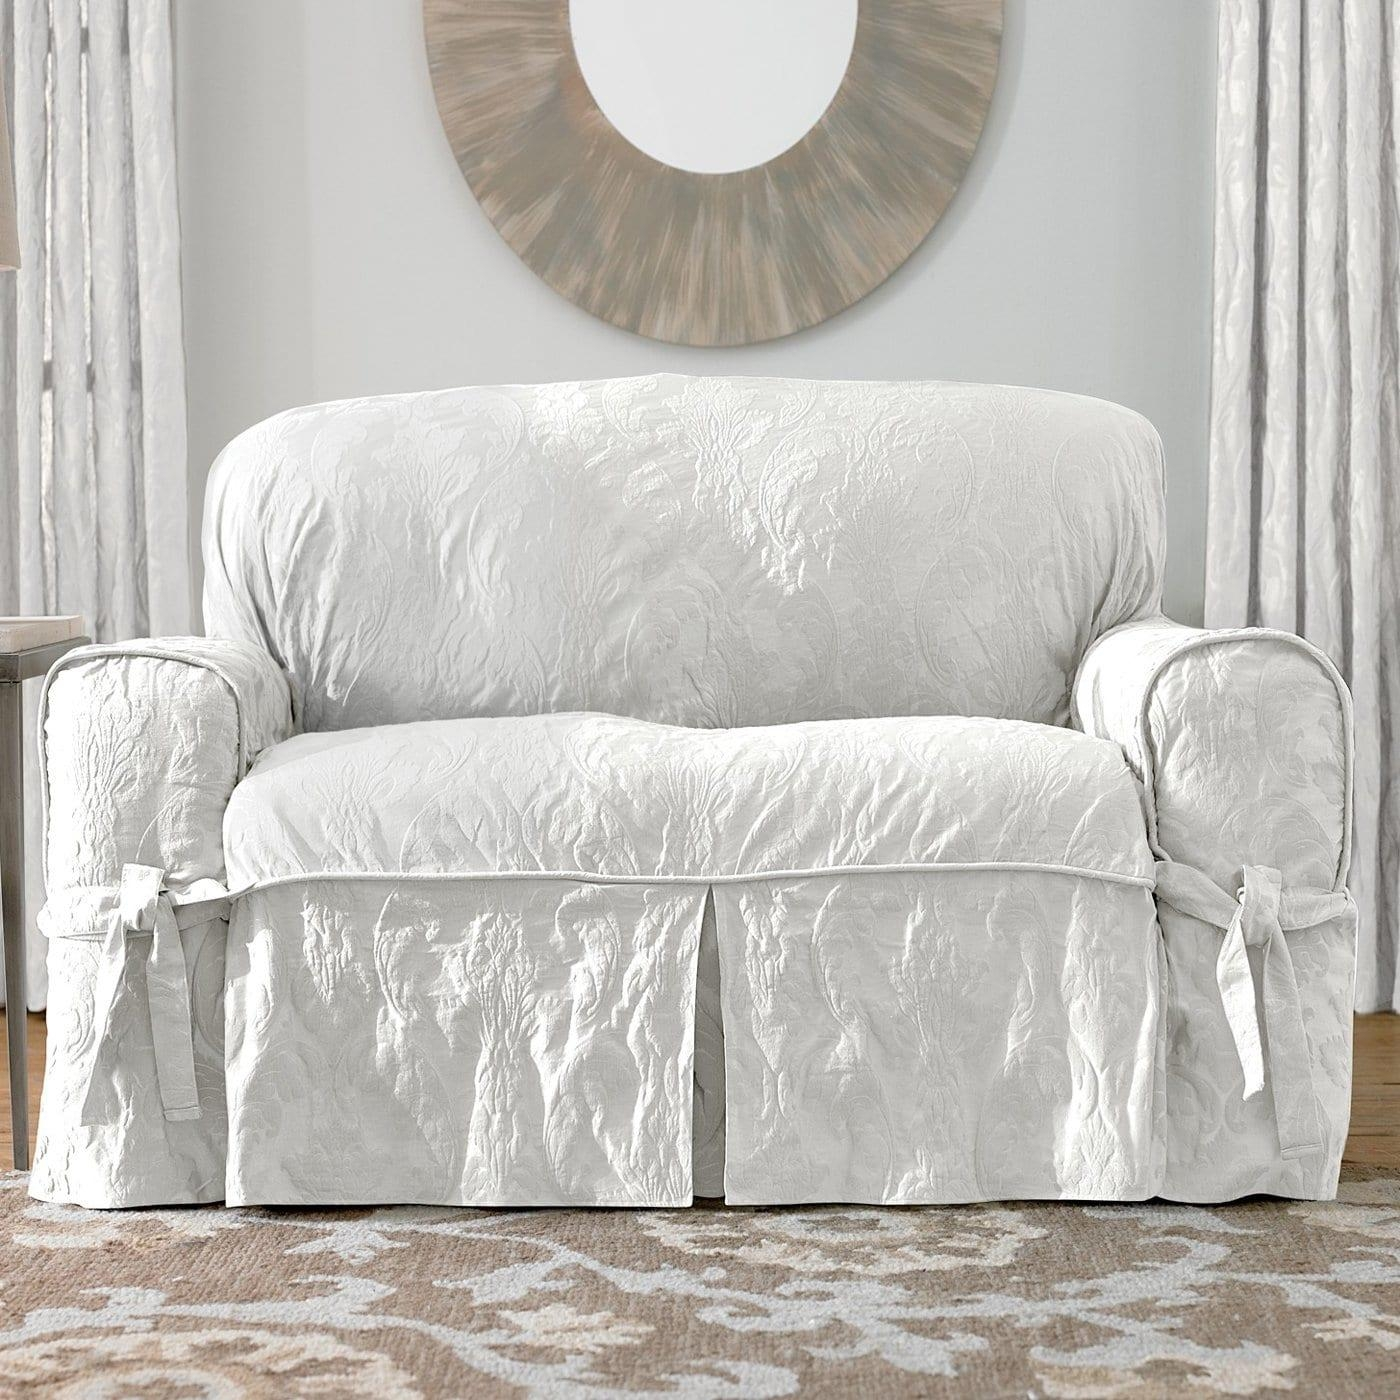 Sure Fit Slipcovers Matelassé Damask 1 Piece Sofa Slipcover | The Mine Regarding 2 Piece Sofa Covers (Image 20 of 27)